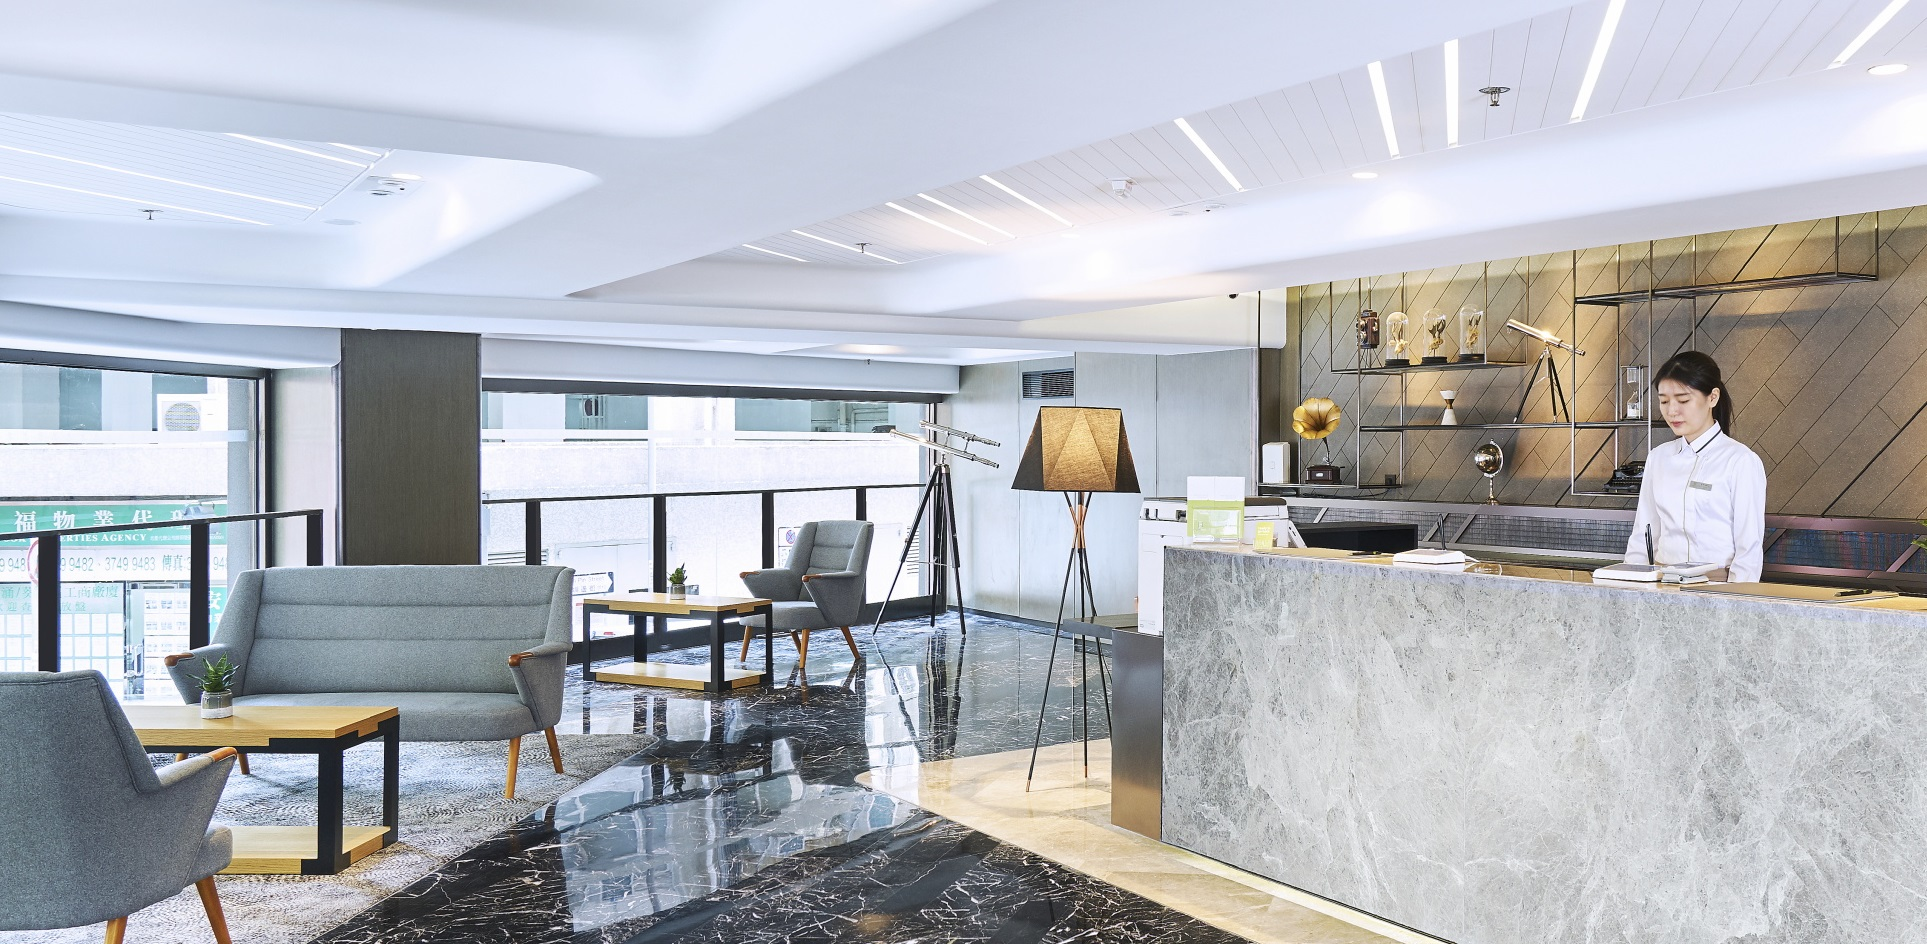 Hotel Ease Tsuen Wan Becomes The First B Corp Hotel In